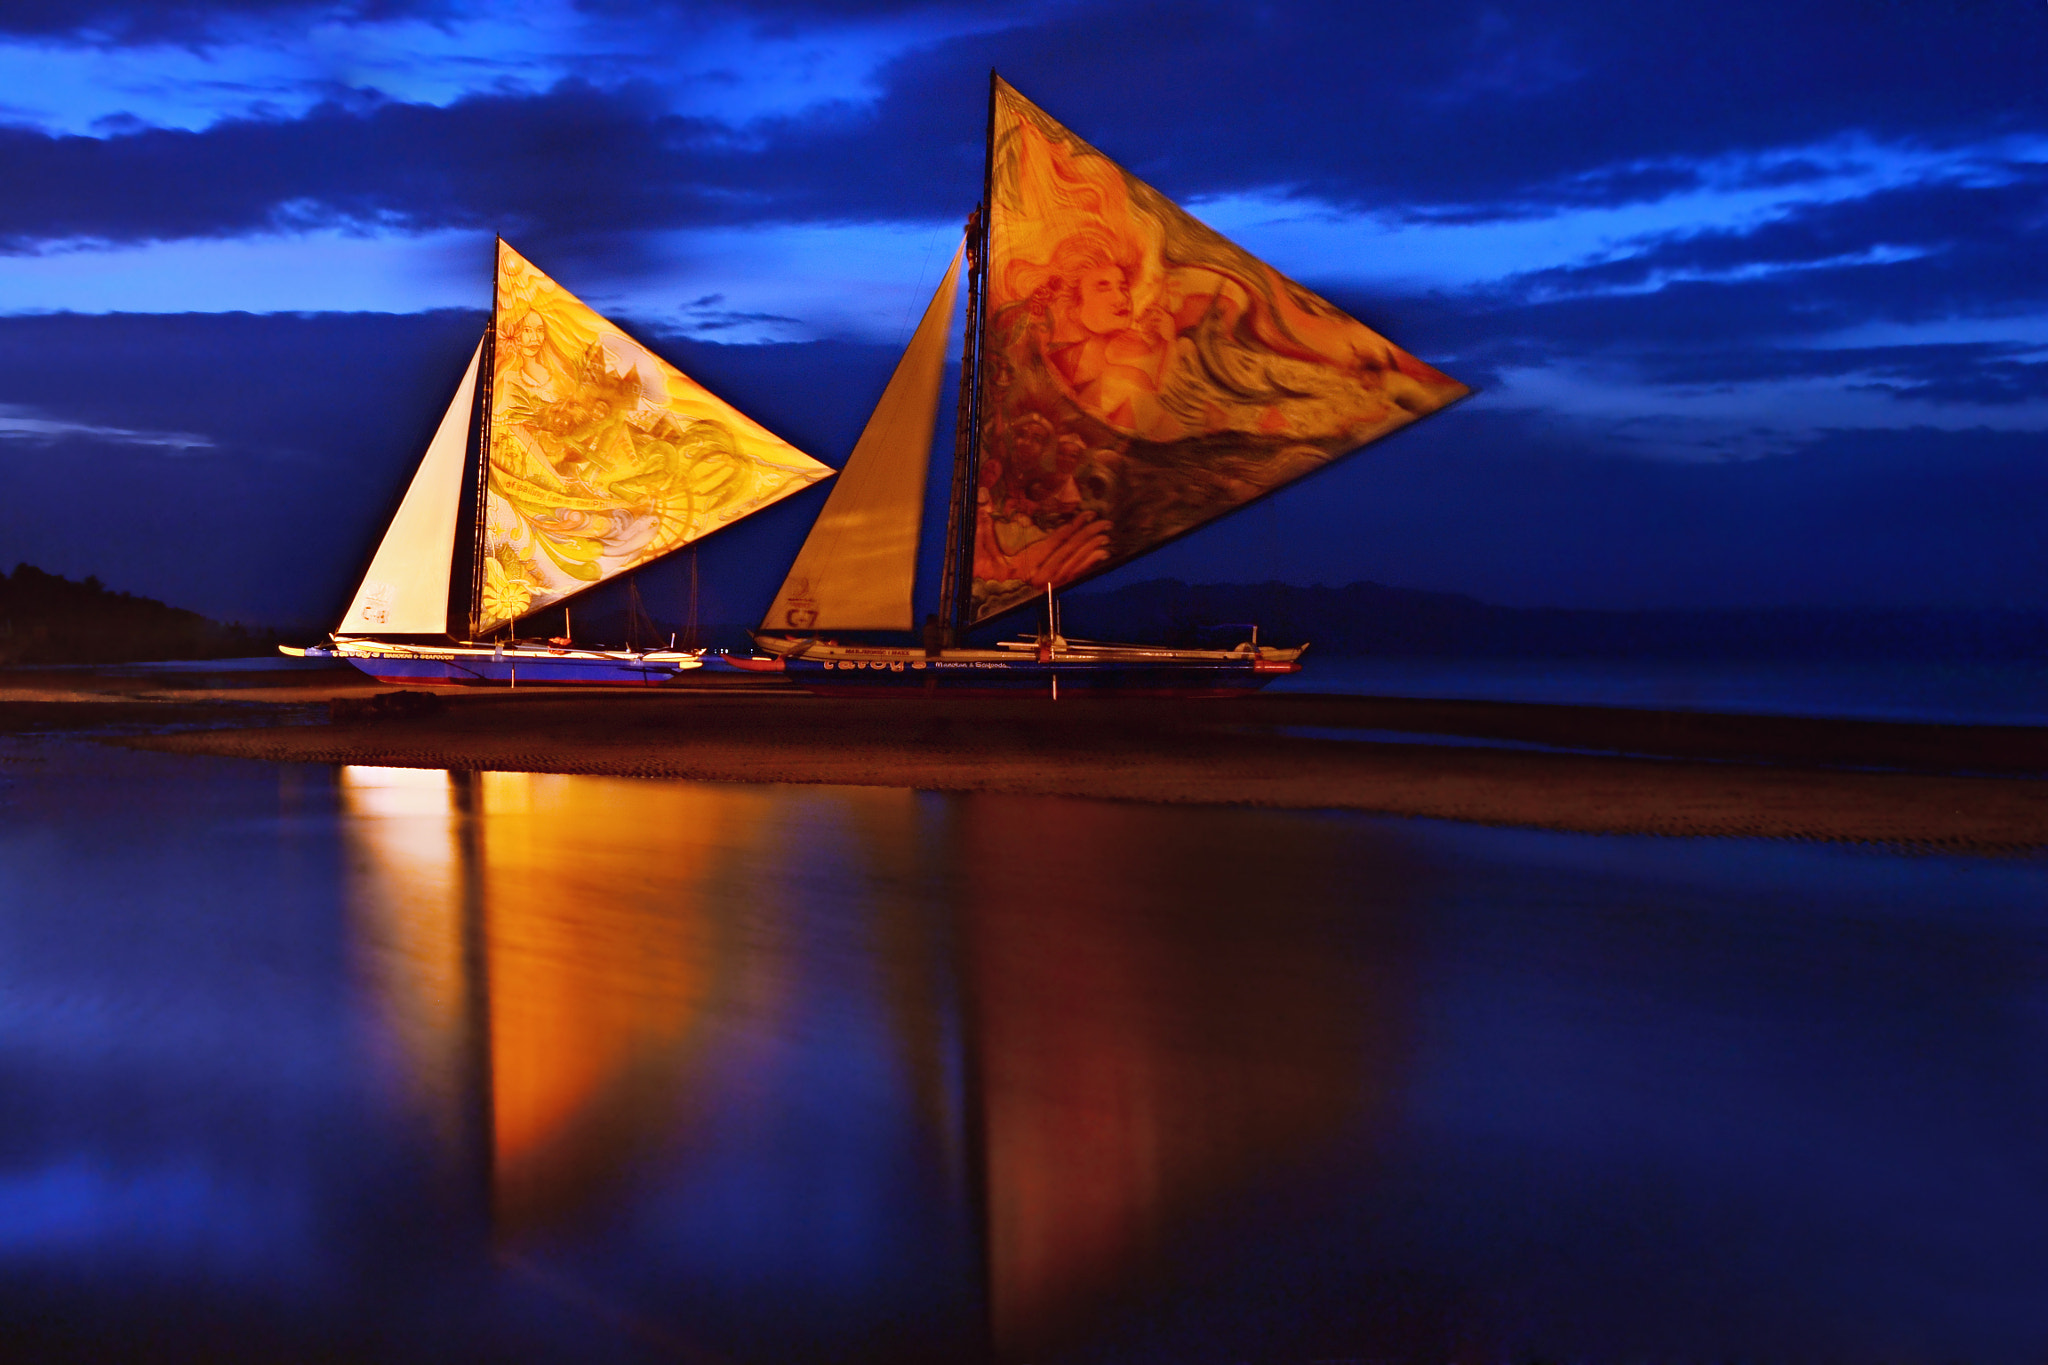 Photograph Early Morning at Paraw Regatta by Wilfredo Lumagbas Jr. on 500px